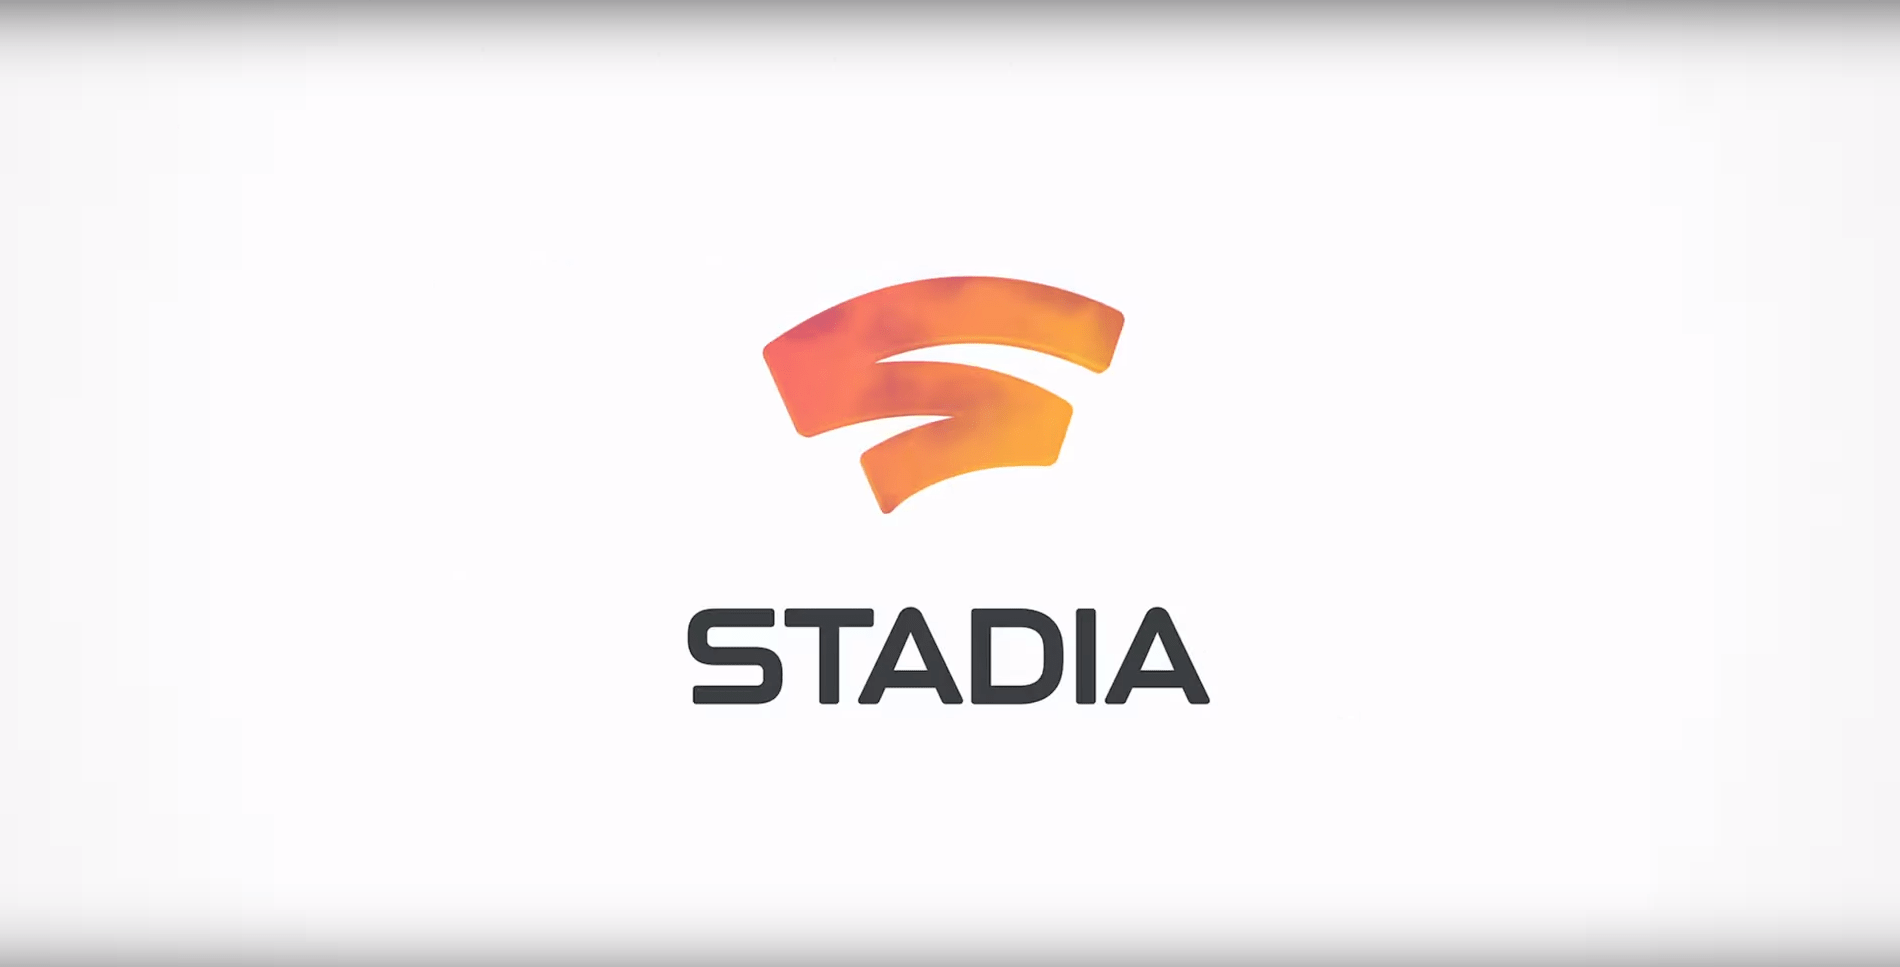 Stadia Reveals 120 Games Scheduled To Come To The Console in 2020